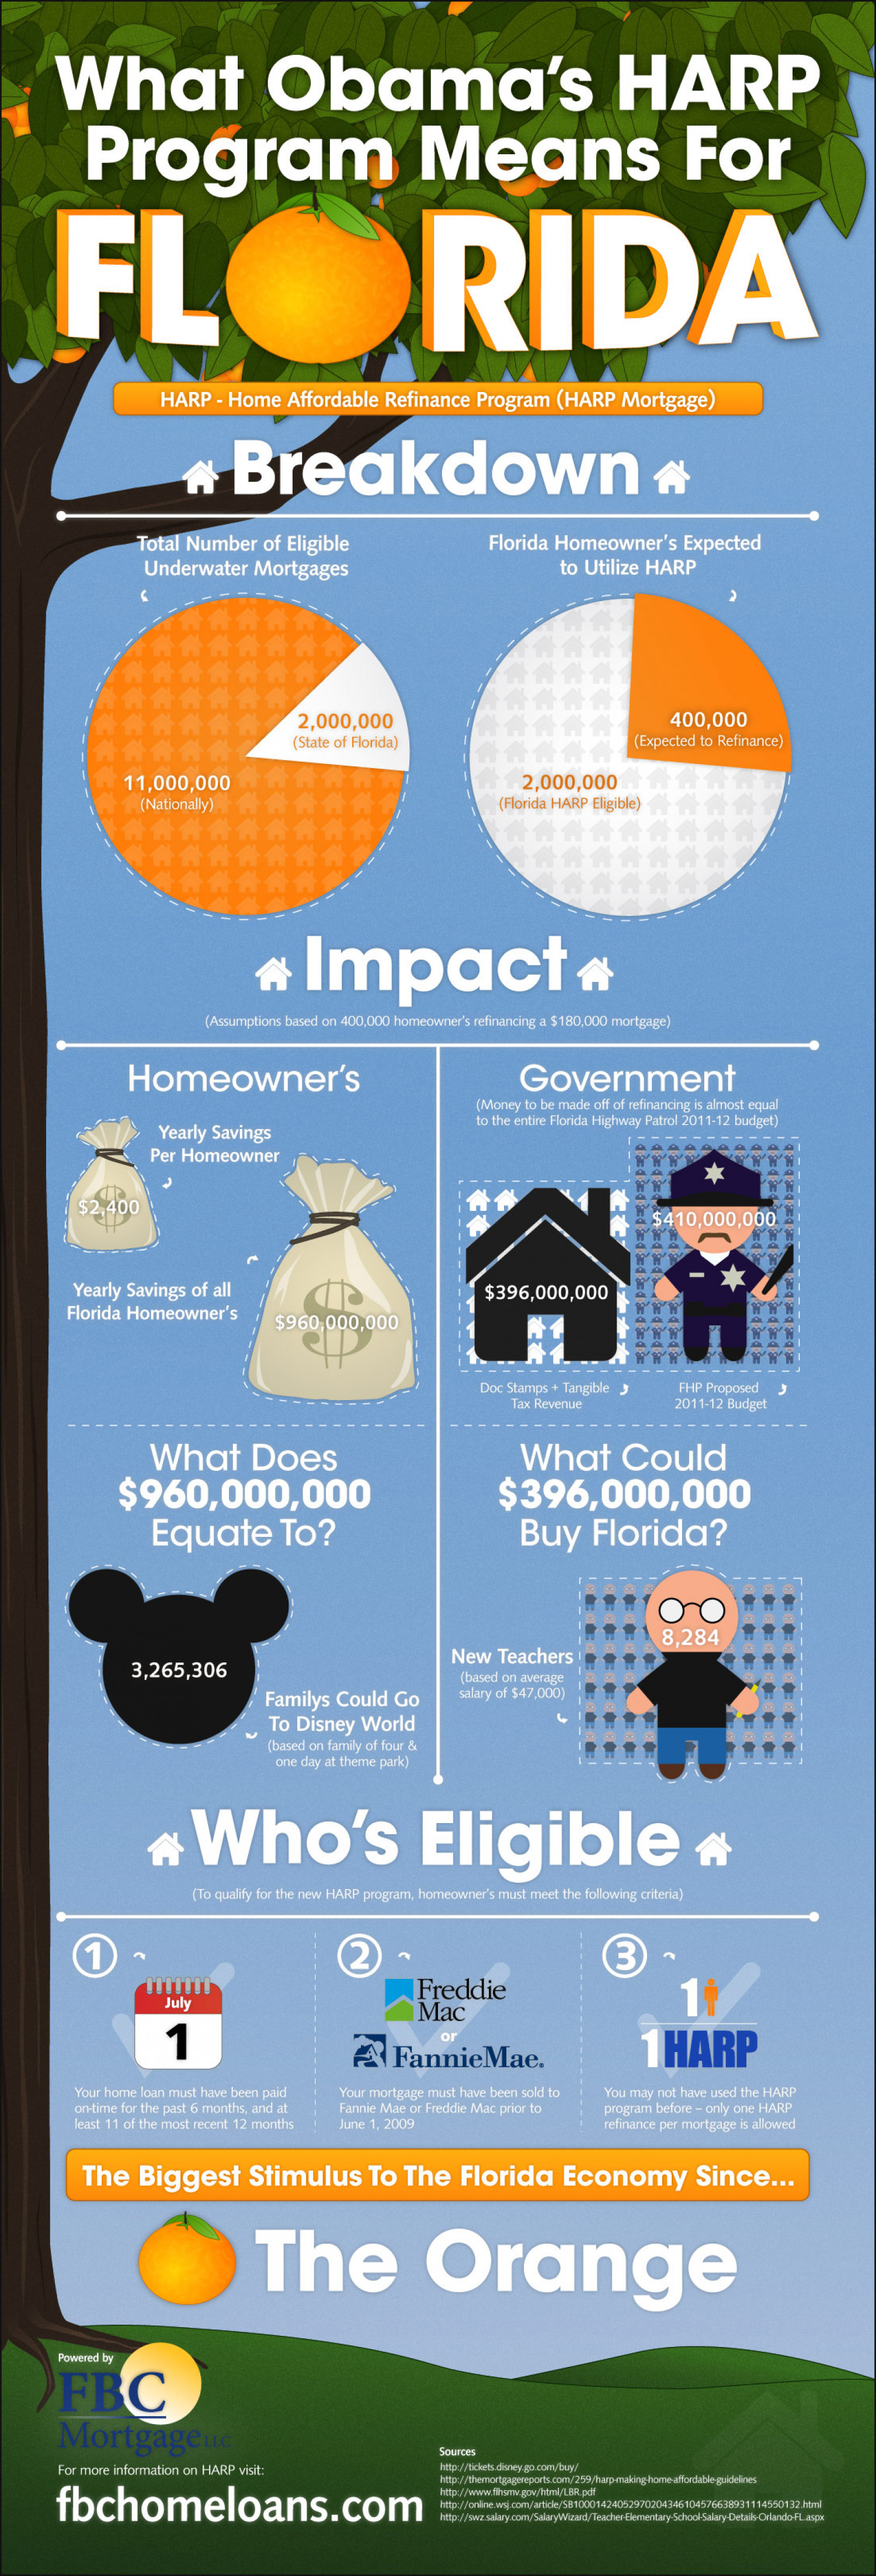 Home Affordable Refinance Program - How HARP Effects Florida Infographic